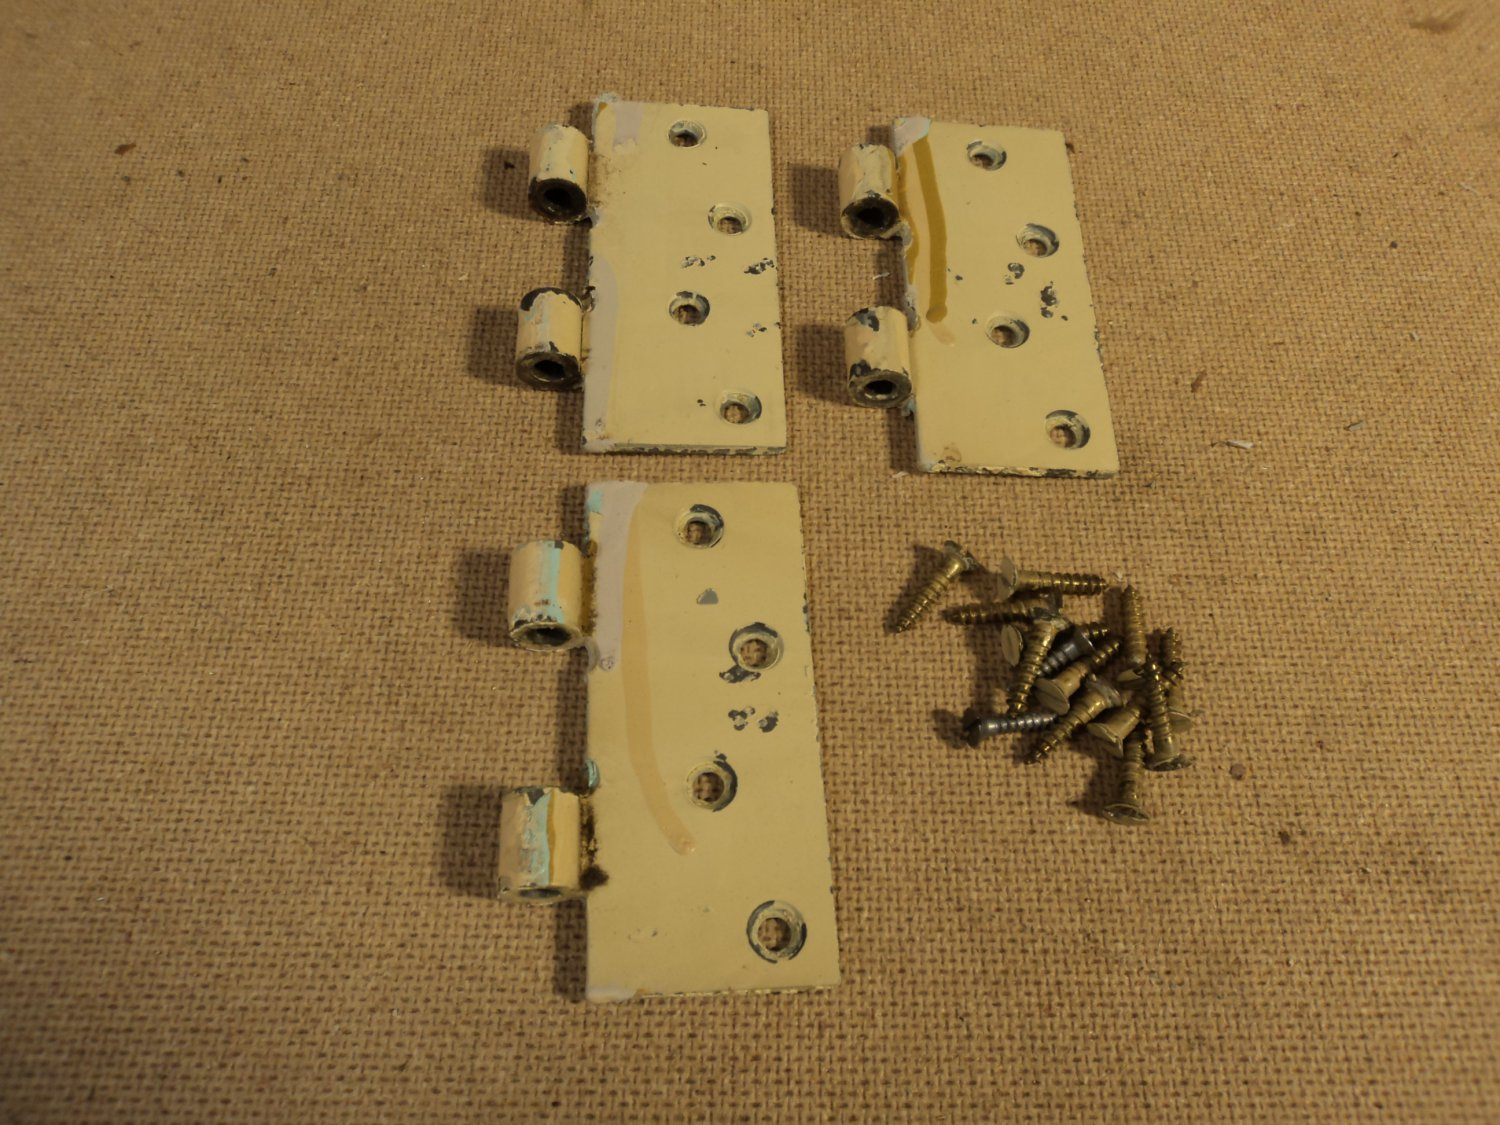 Stanley Partial Hinges Heavy Duty 1 3/4in x 4in Painted Yellow Set Of 3 Vintage